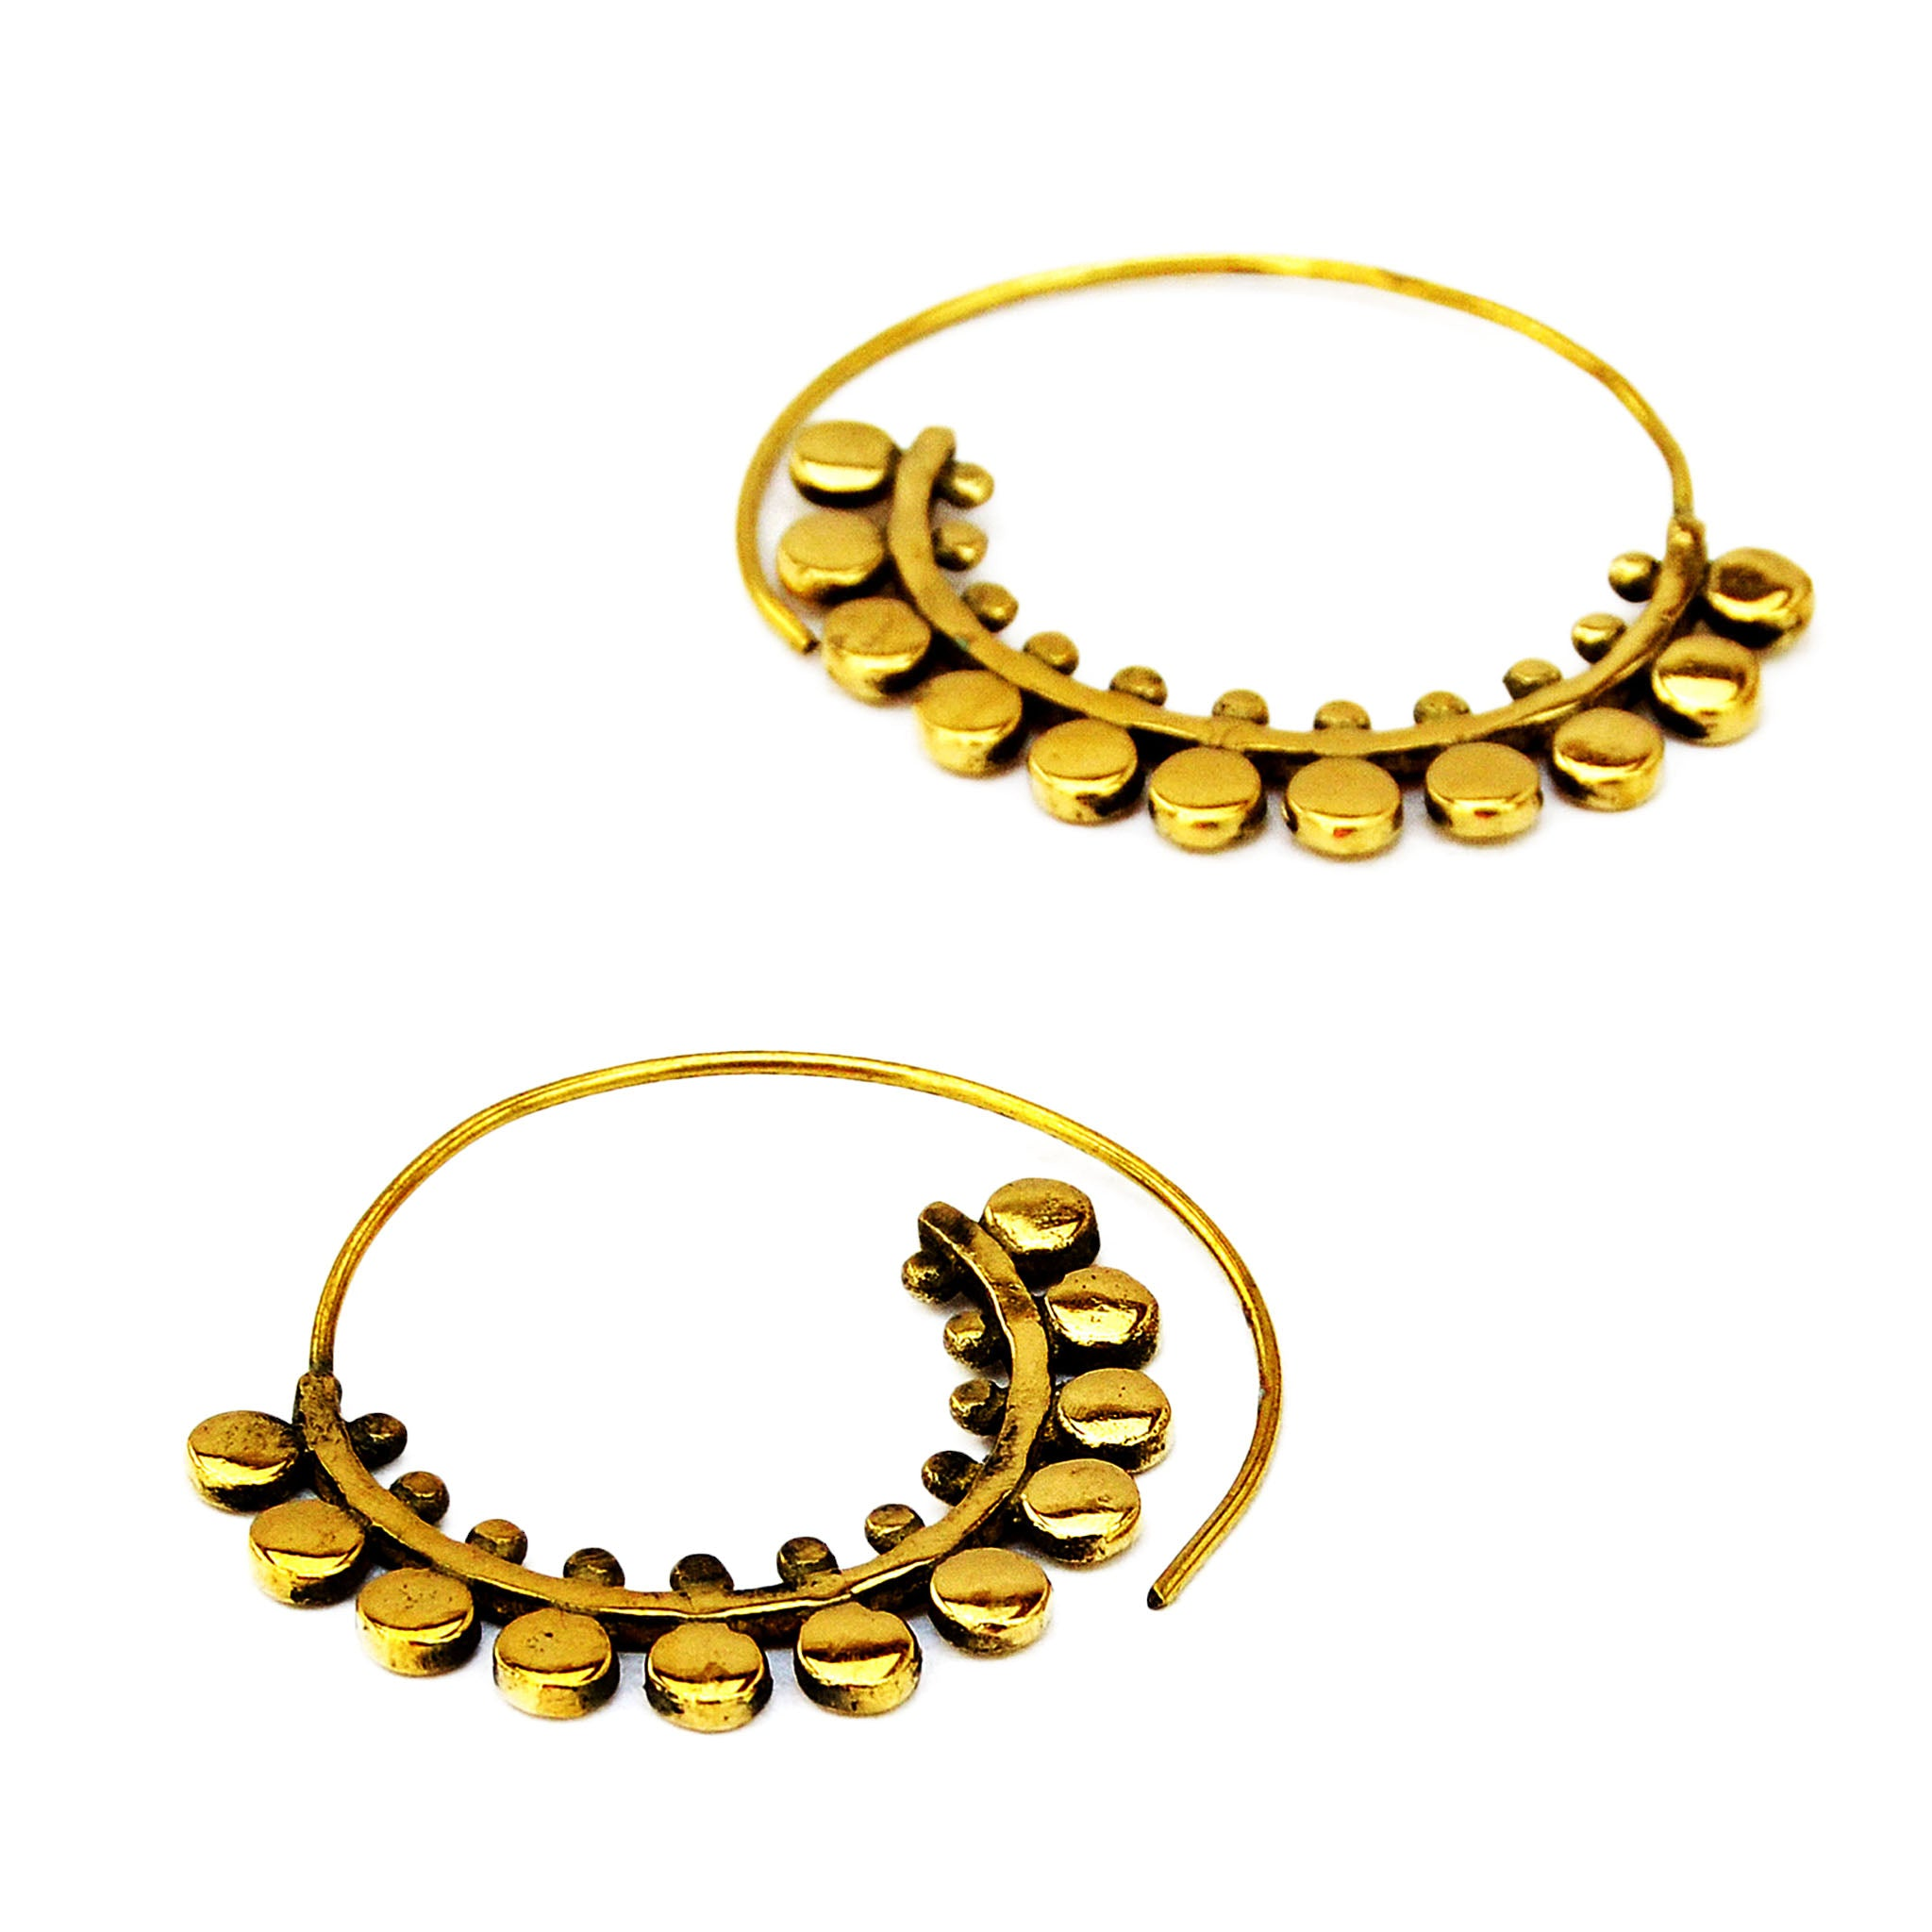 Spiral rajasthani brass earrings